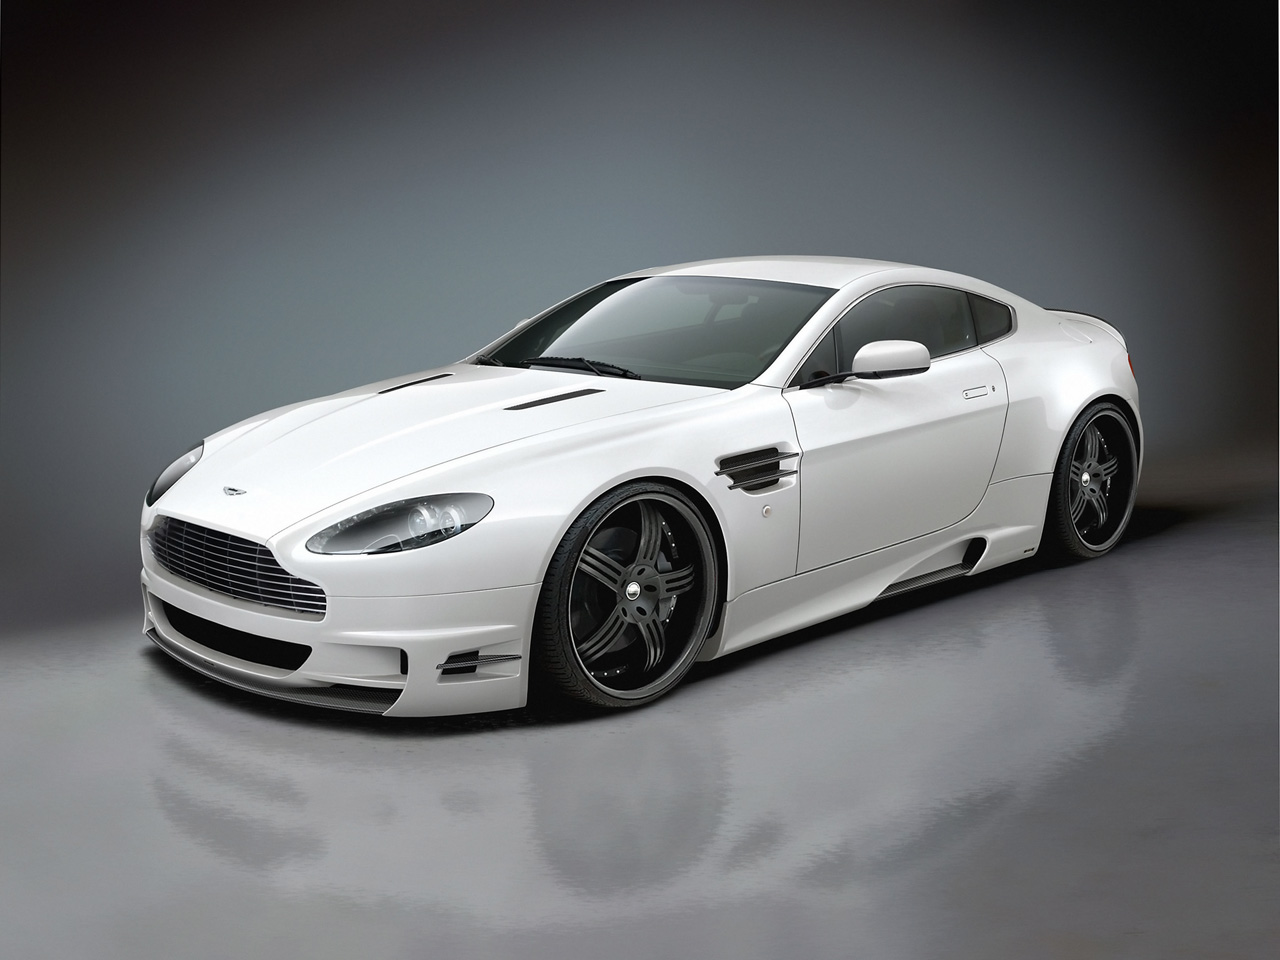 vantage – Automobile Wallpapers in, HD | Iphone | Android| Desktop 5 Wallpaper